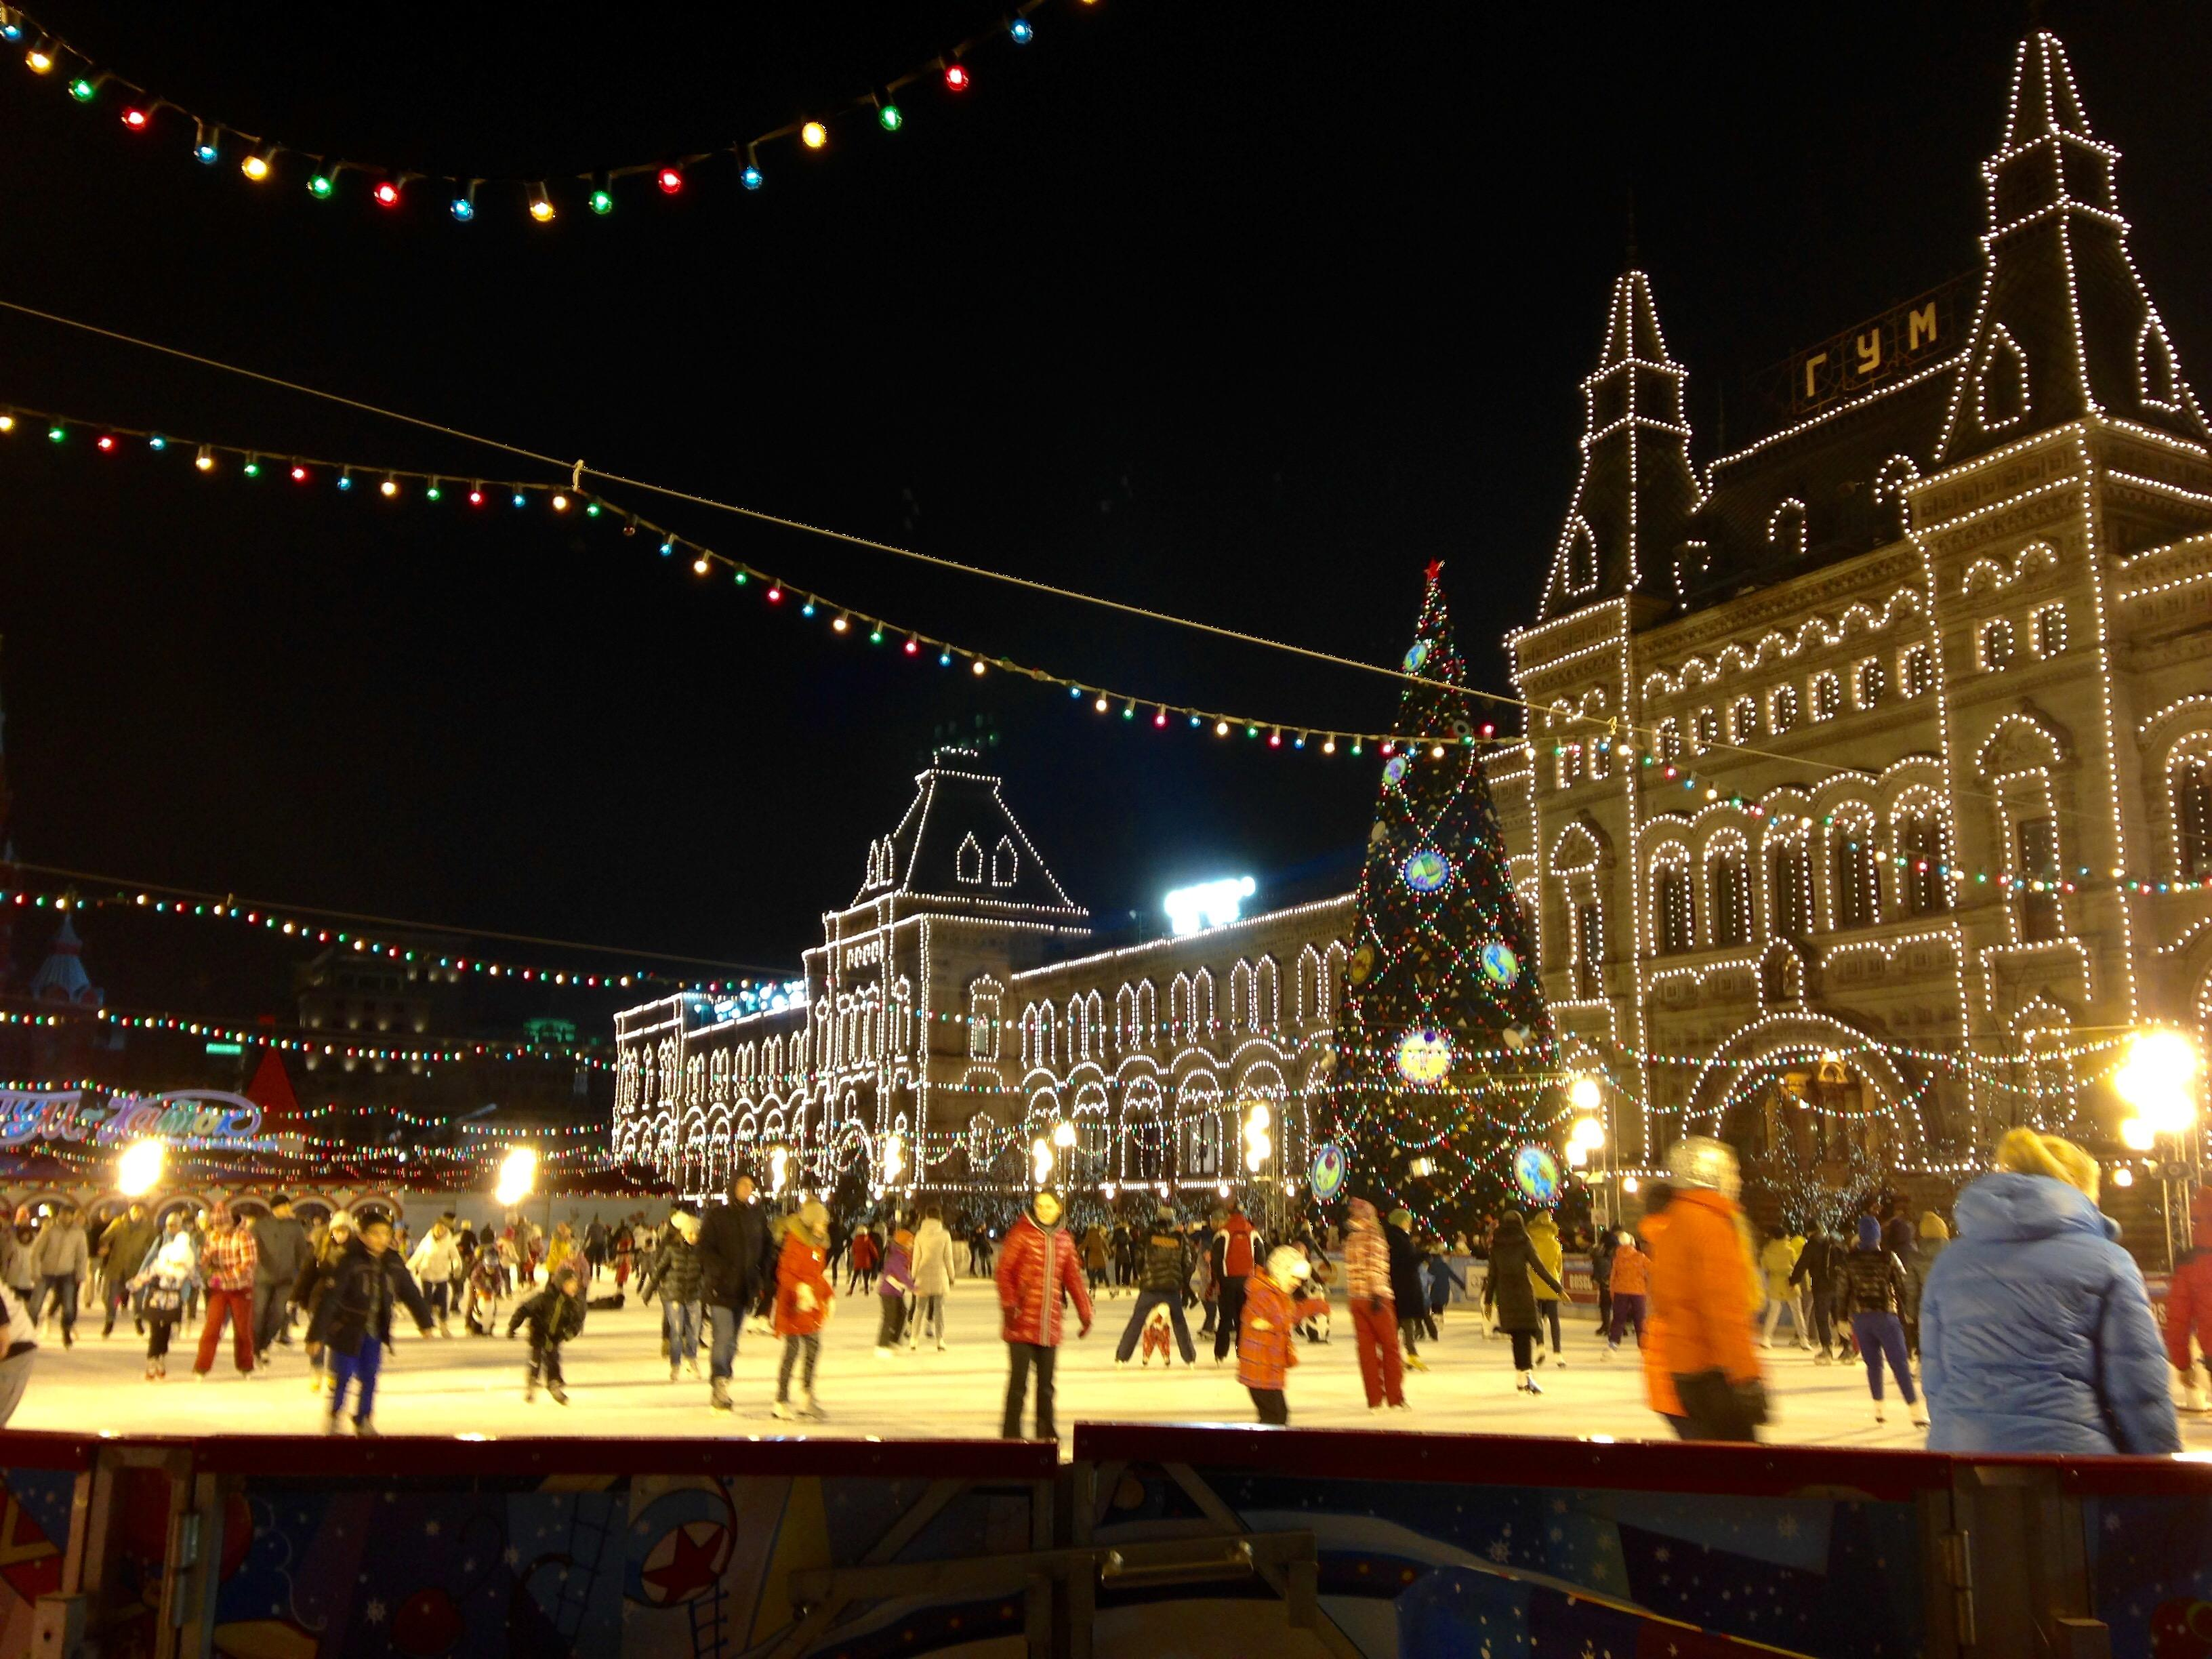 GUM moskow winter ice skating